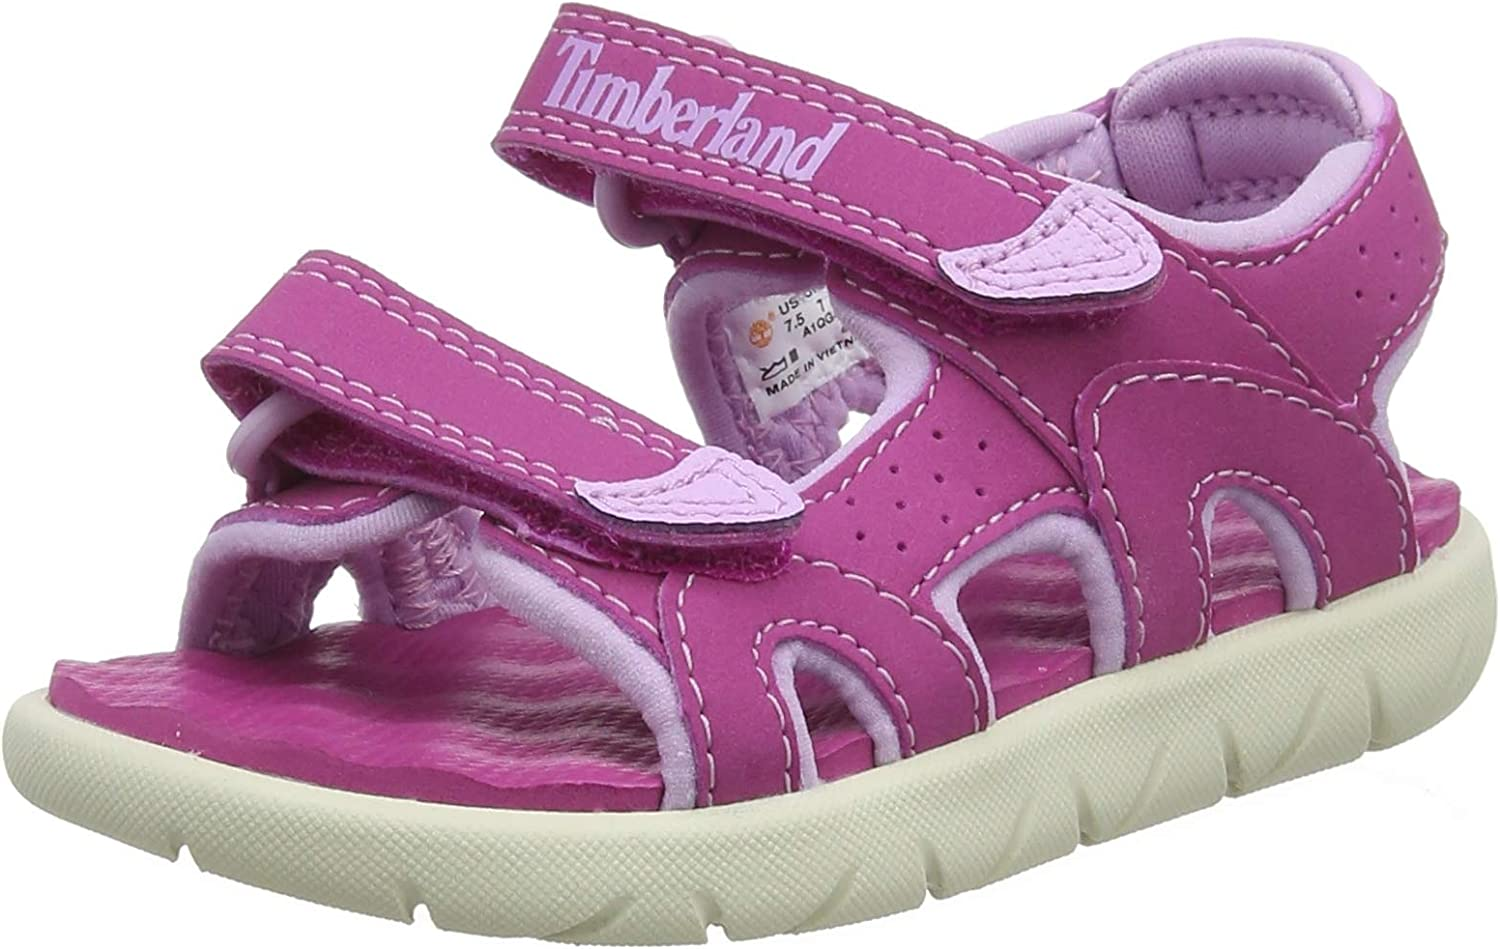 Timberland Perkins Row 2-Strap Medium Pink Synthetic Infant Strap Sandals